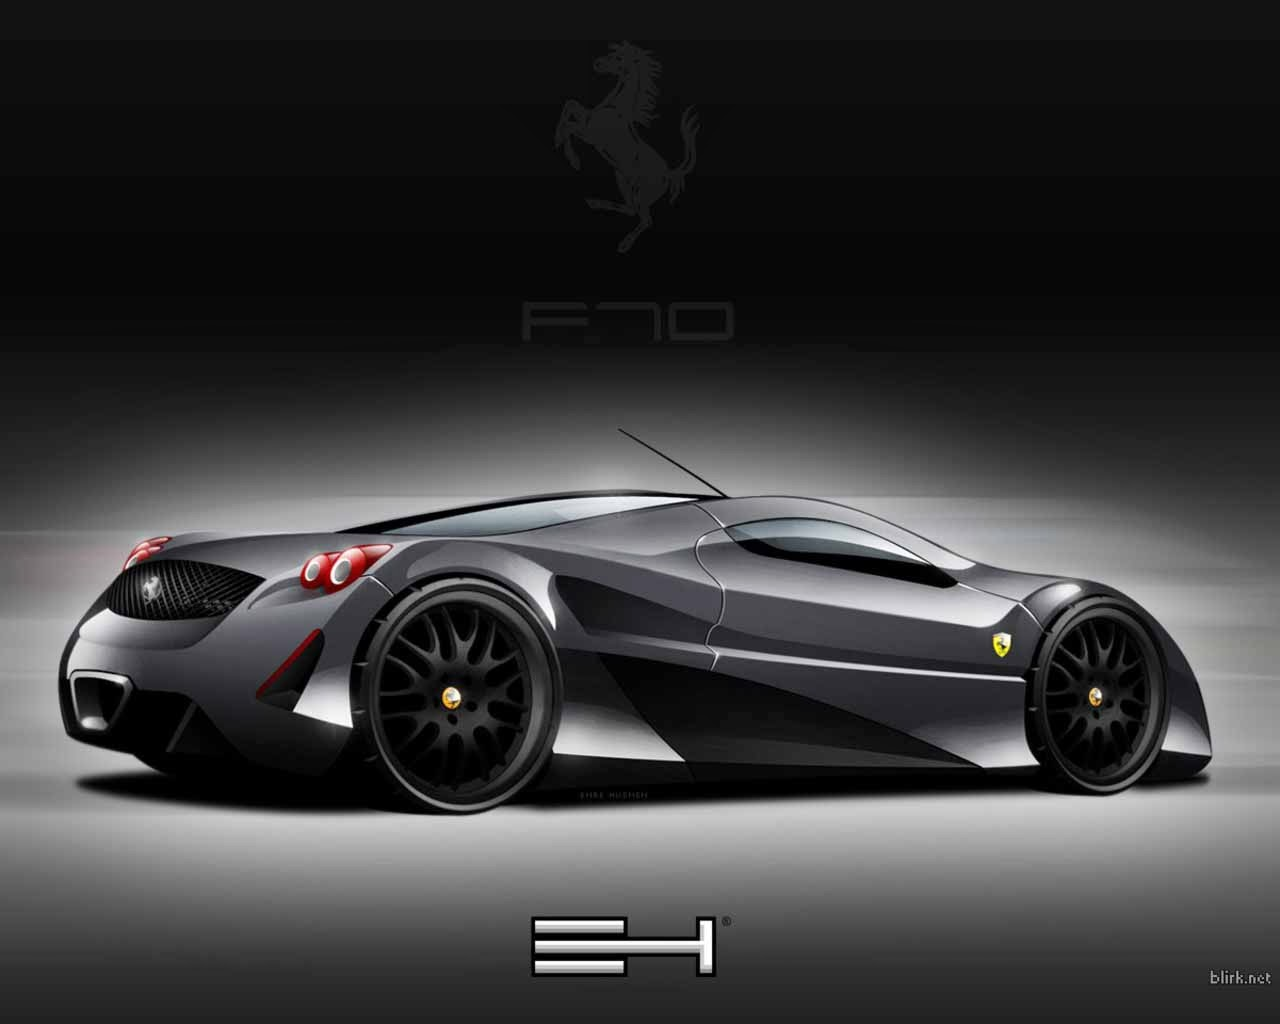 Hd wallpapers ferrari f70 wallpapers high quality resolution wallpapers in widescreen where you can easily download high definition wallpapers for free to your pc laptop desktop i pad vanachro Choice Image